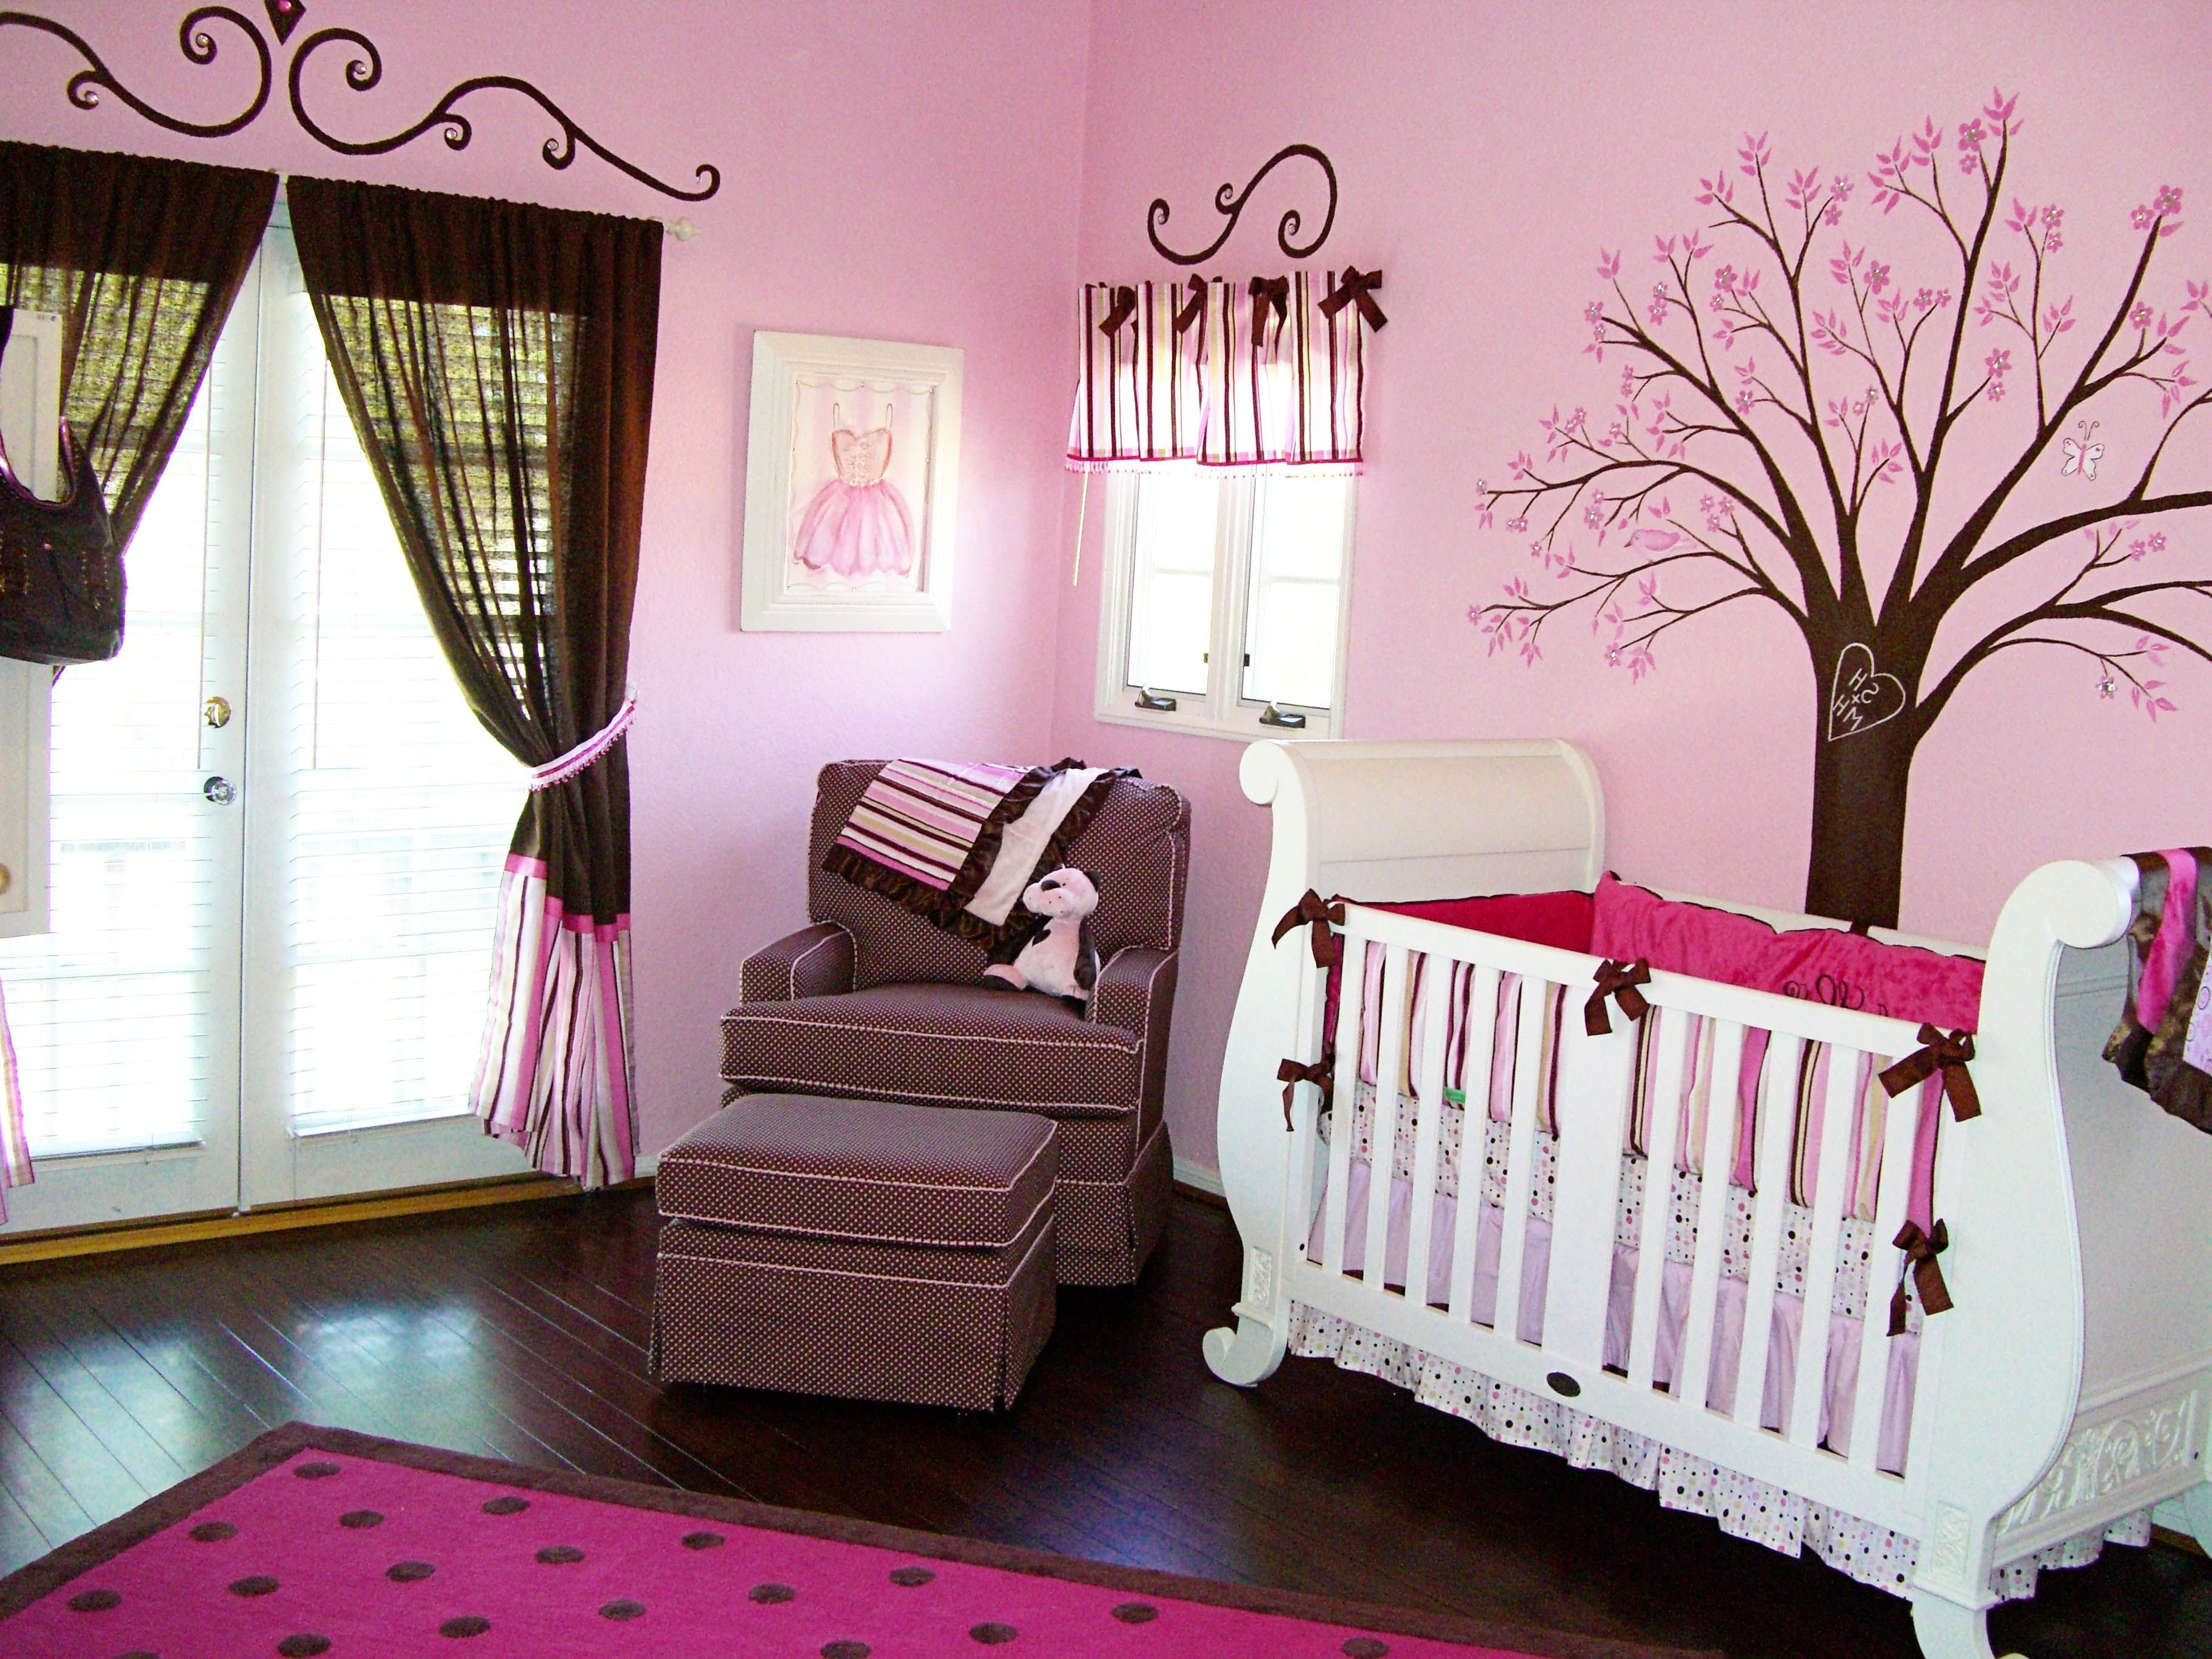 10 Cute Baby Room Ideas For A Girl interior beautiful theme girl baby nursery ideas wooden component 2 2020